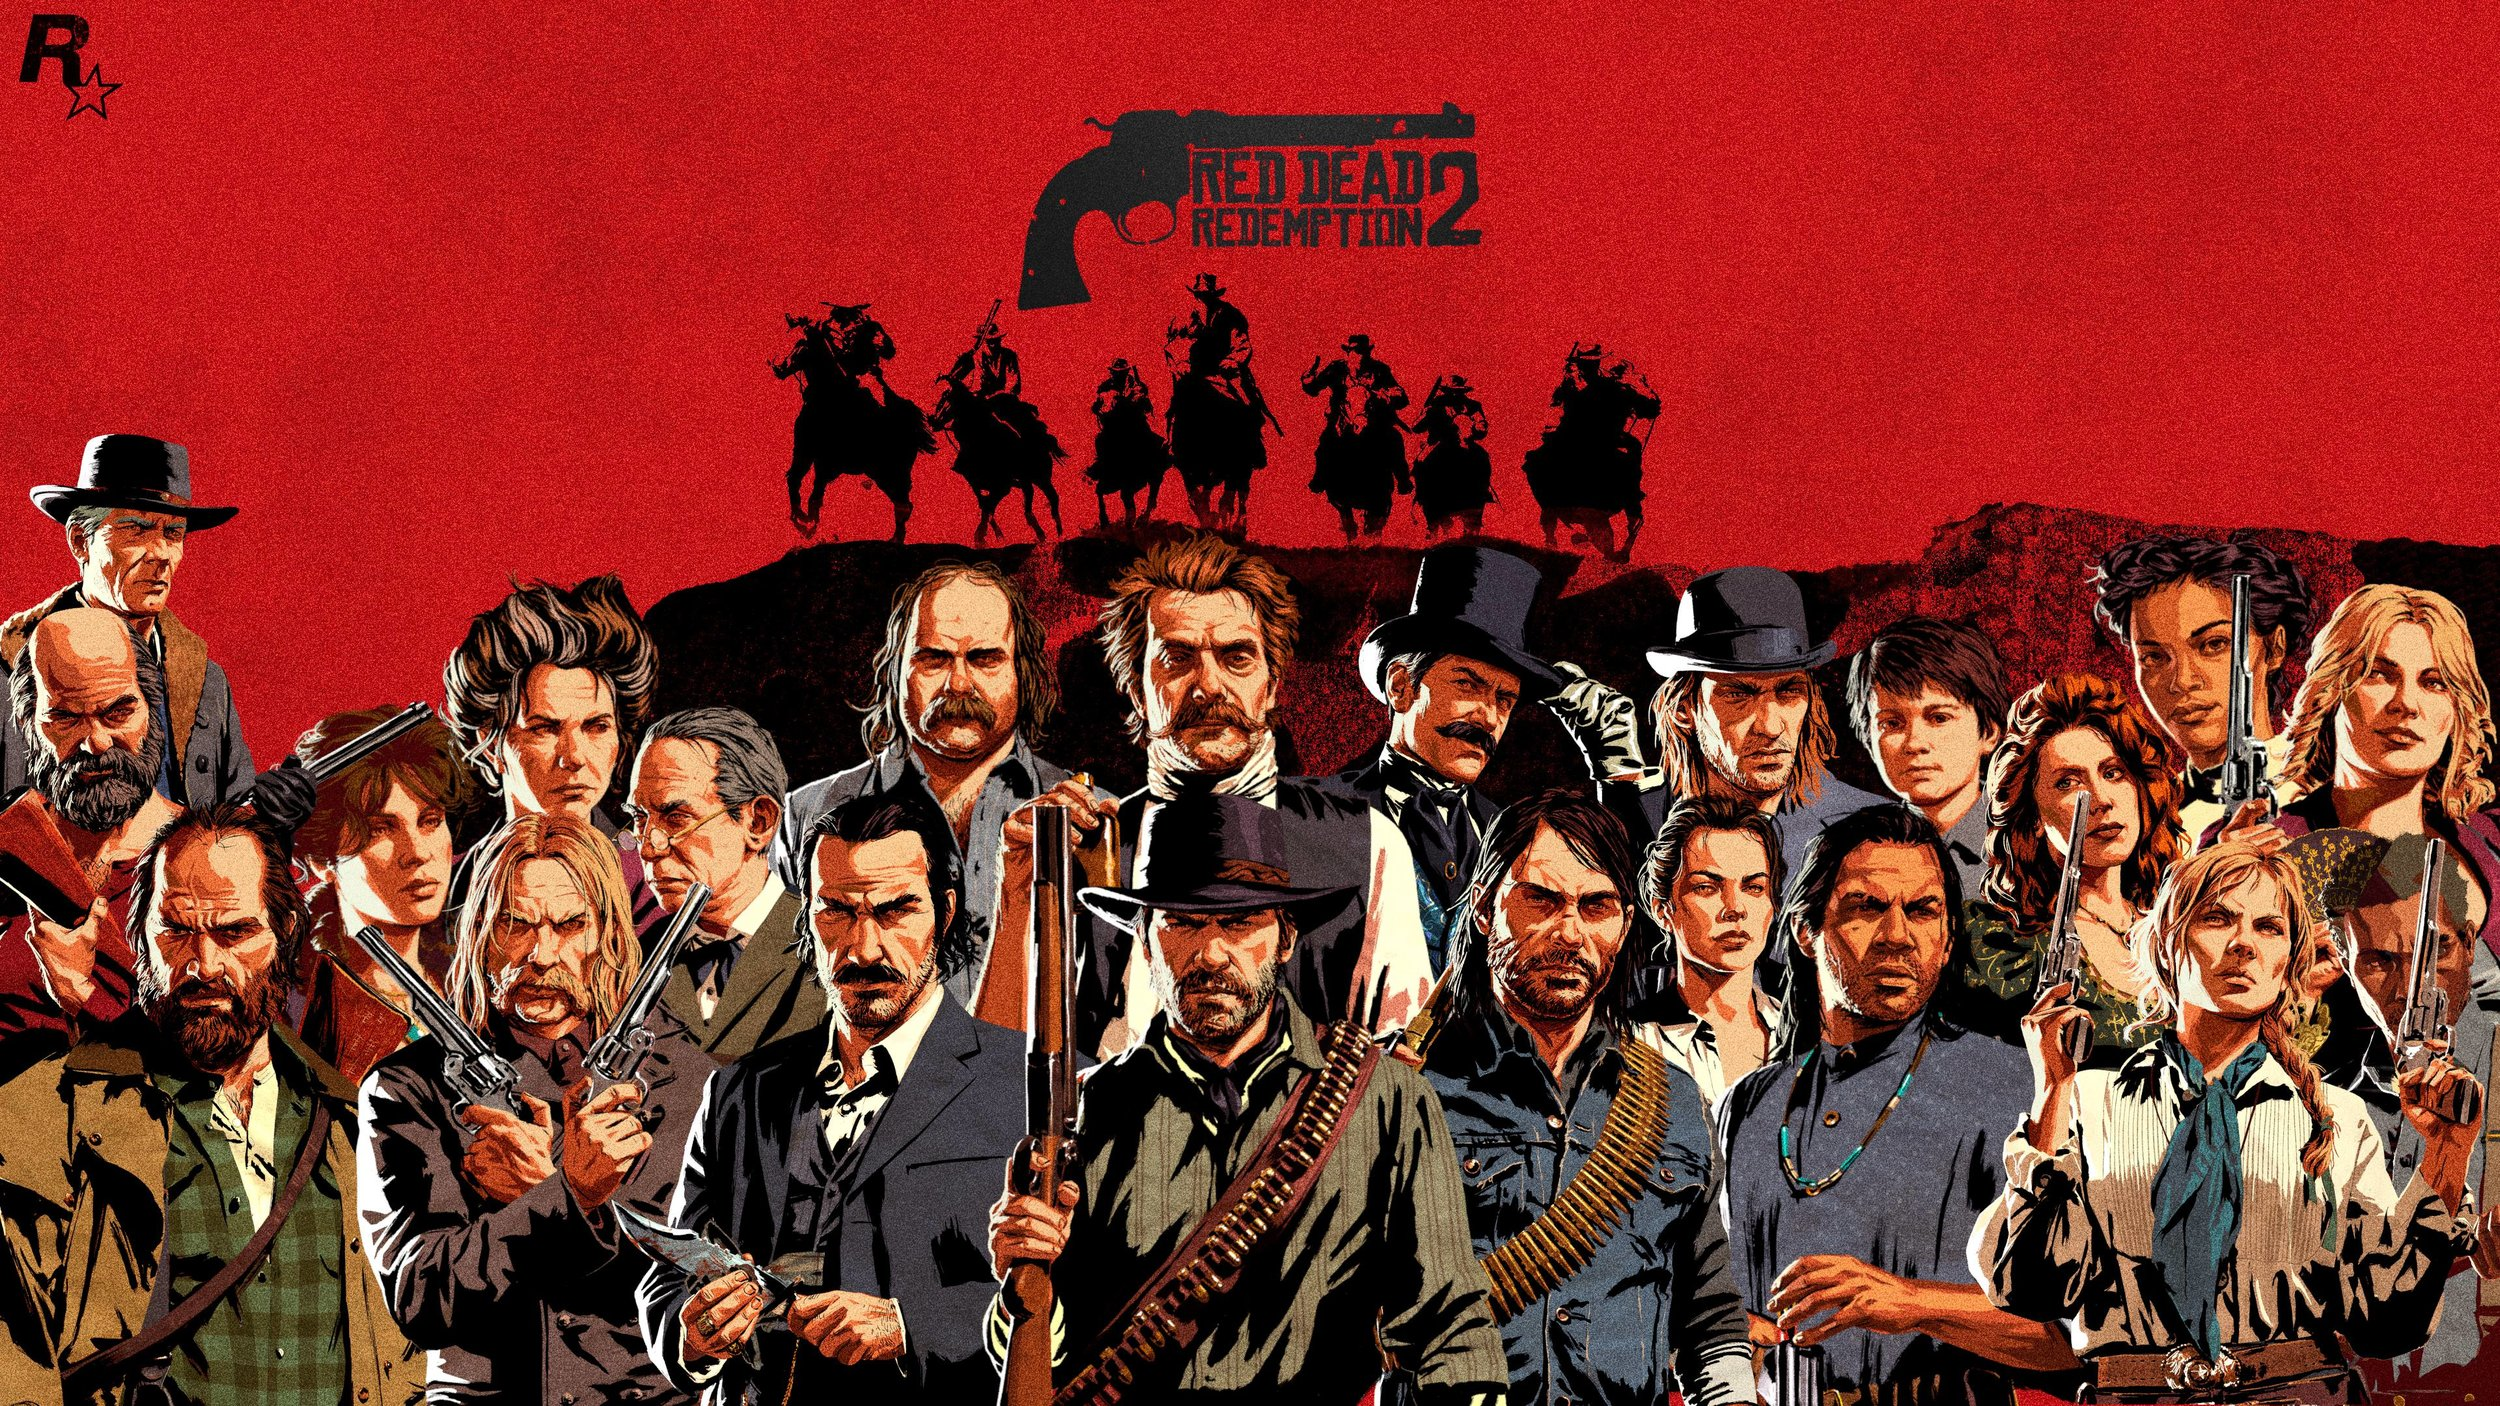 red dead redemption 2 wp.jpg